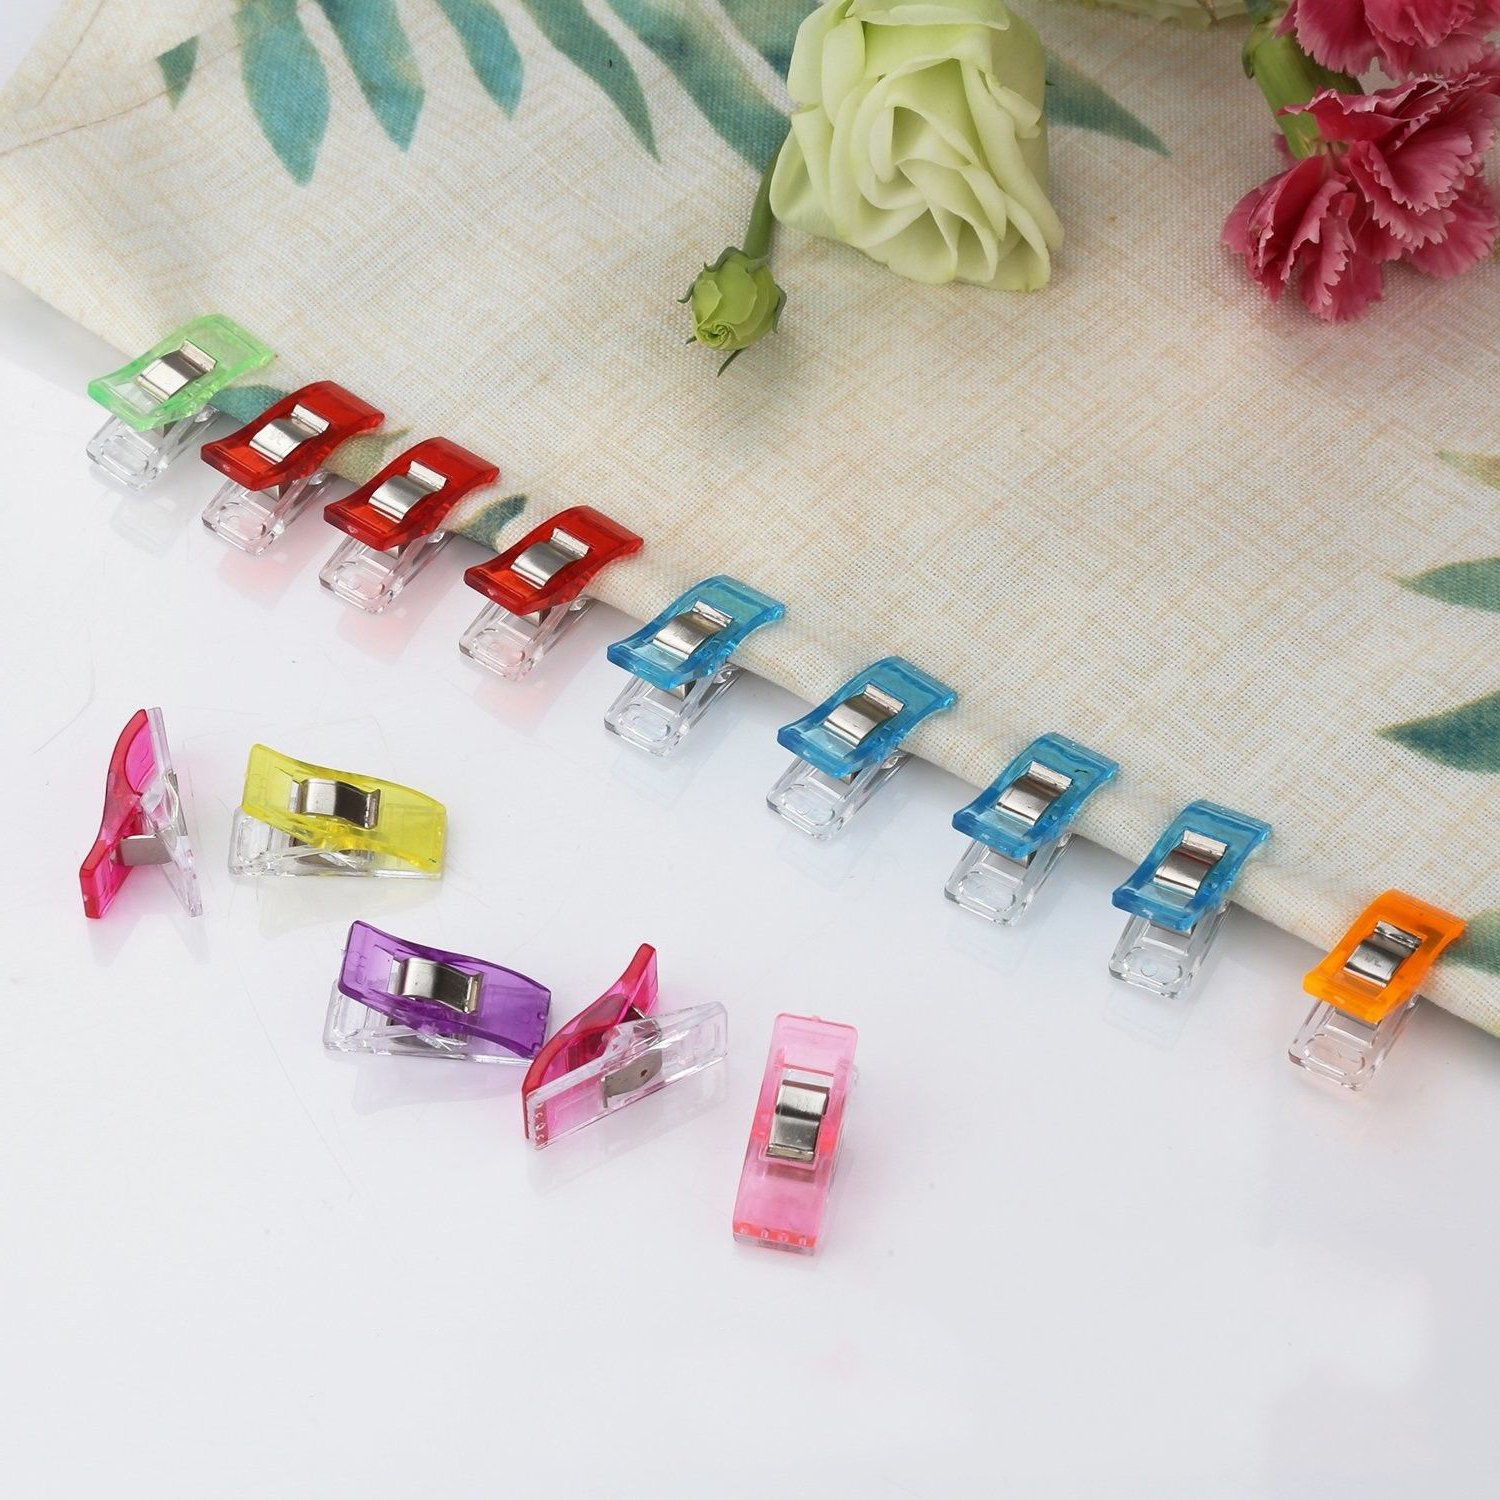 Multi Purpose Craft Clips for Sewing Quilting Crafting 5 Assorted Colors 100 Pack GLE2016 Sewing Clips